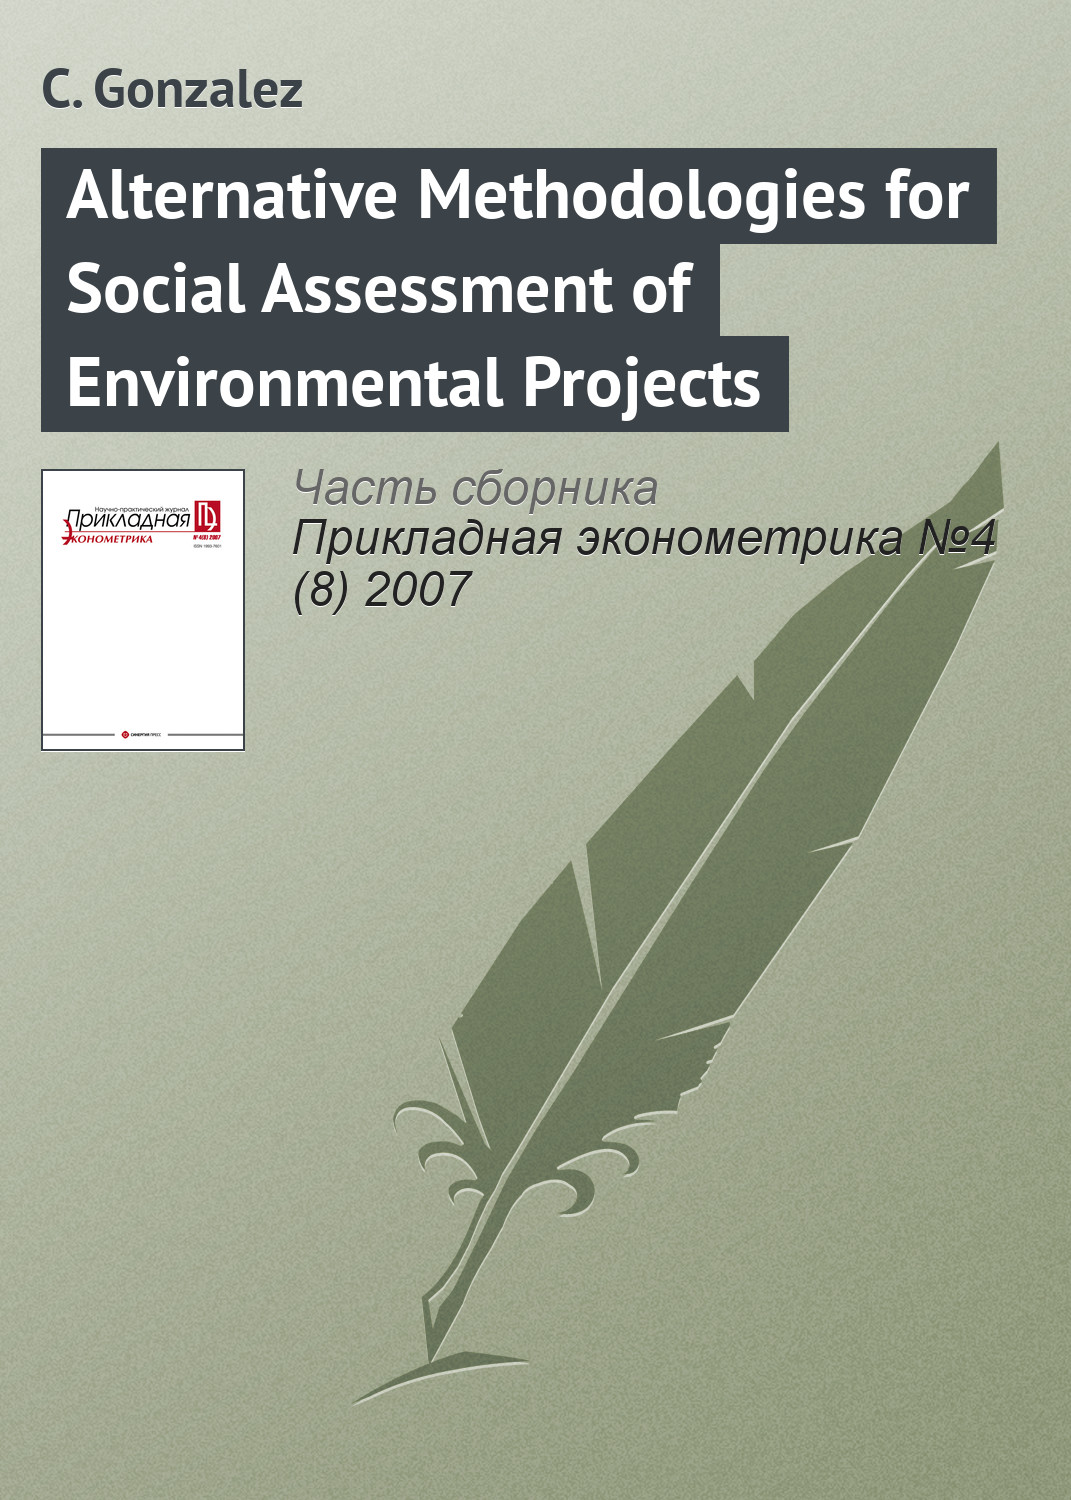 лучшая цена C. Gonzalez Alternative Methodologies for Social Assessment of Environmental Projects